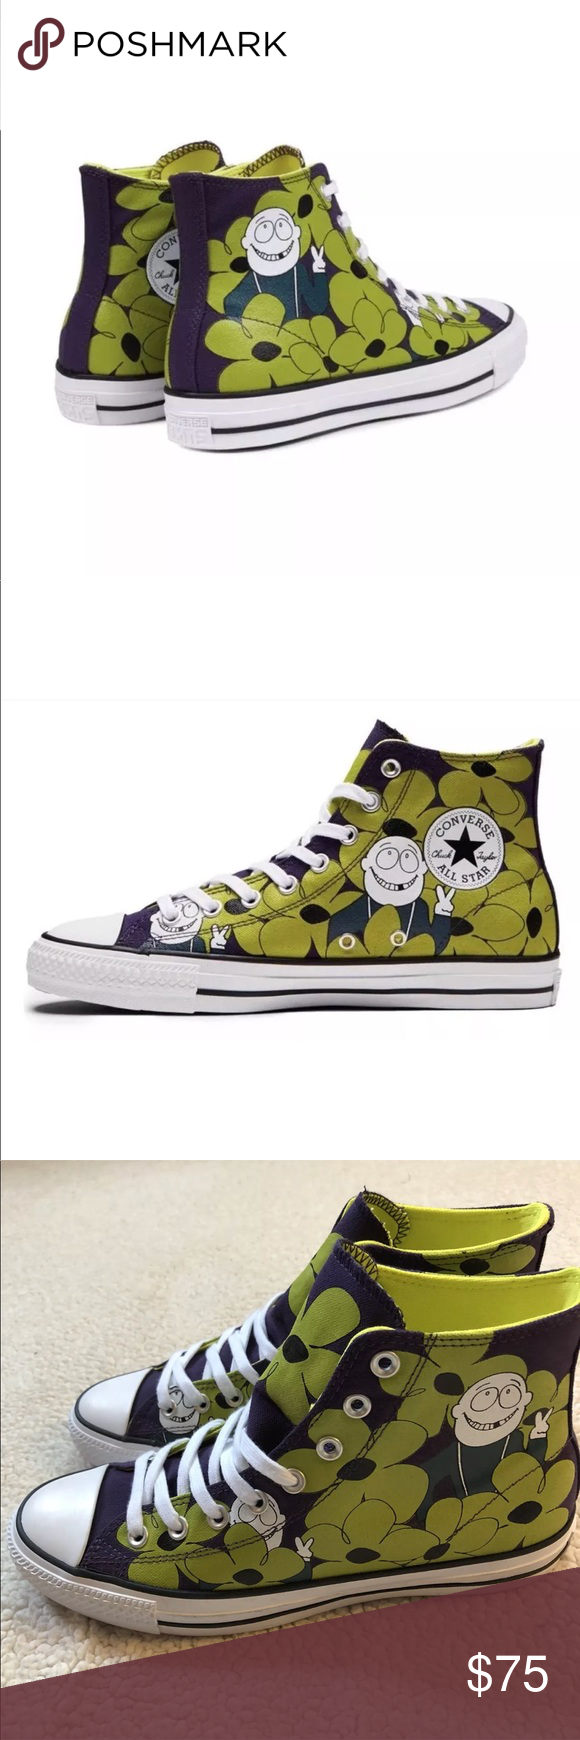 6427b543908fdc CONVERSE Chuck Taylor All Star Pro Hi Dinosaur Jr. NEW CONVERSE Chuck  Taylor All Star